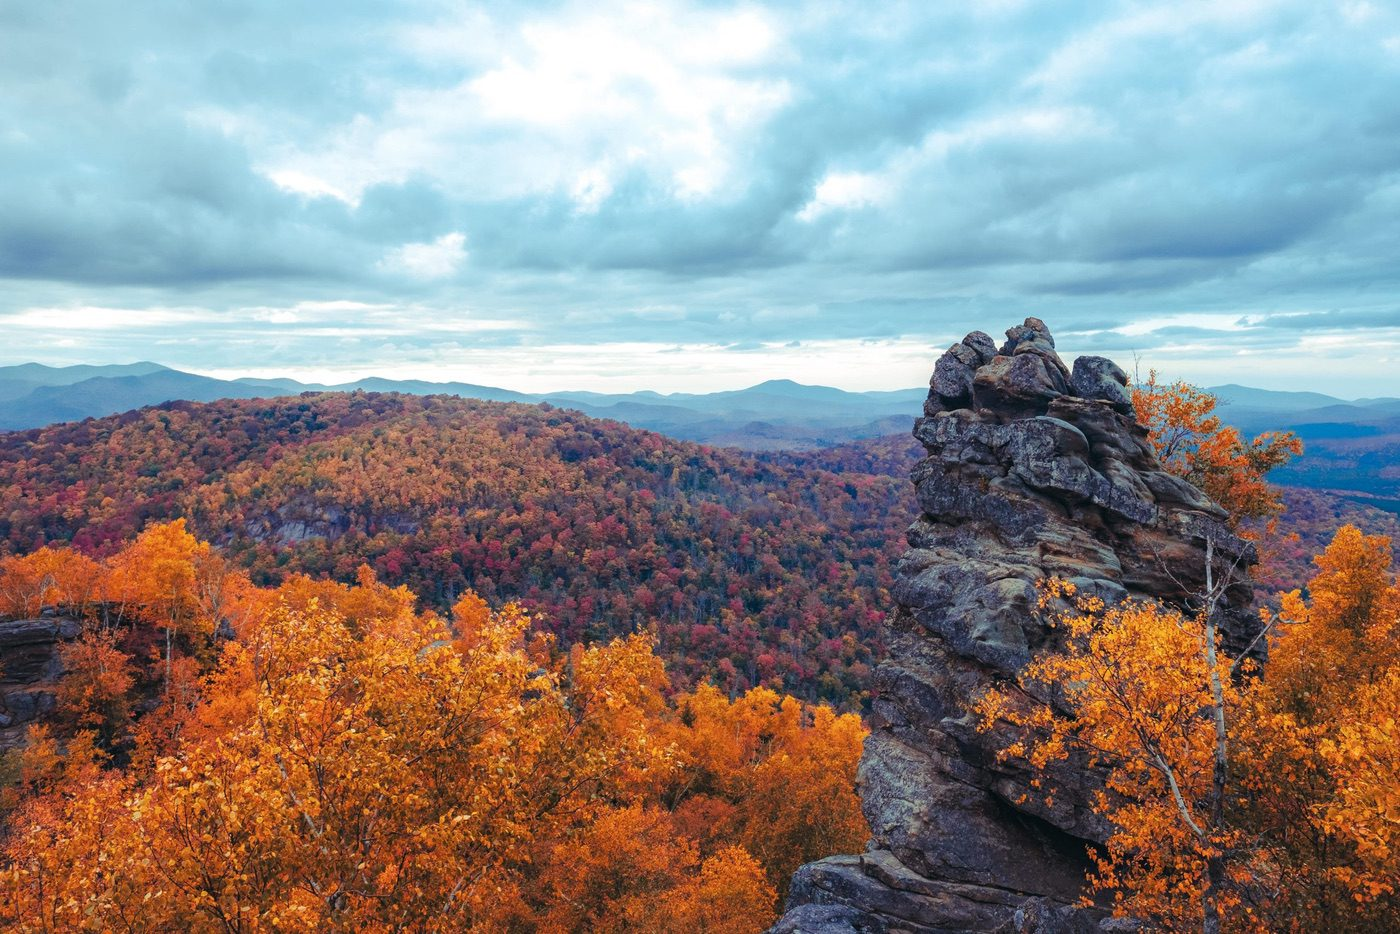 Summit of Chimney Mountain in the fall